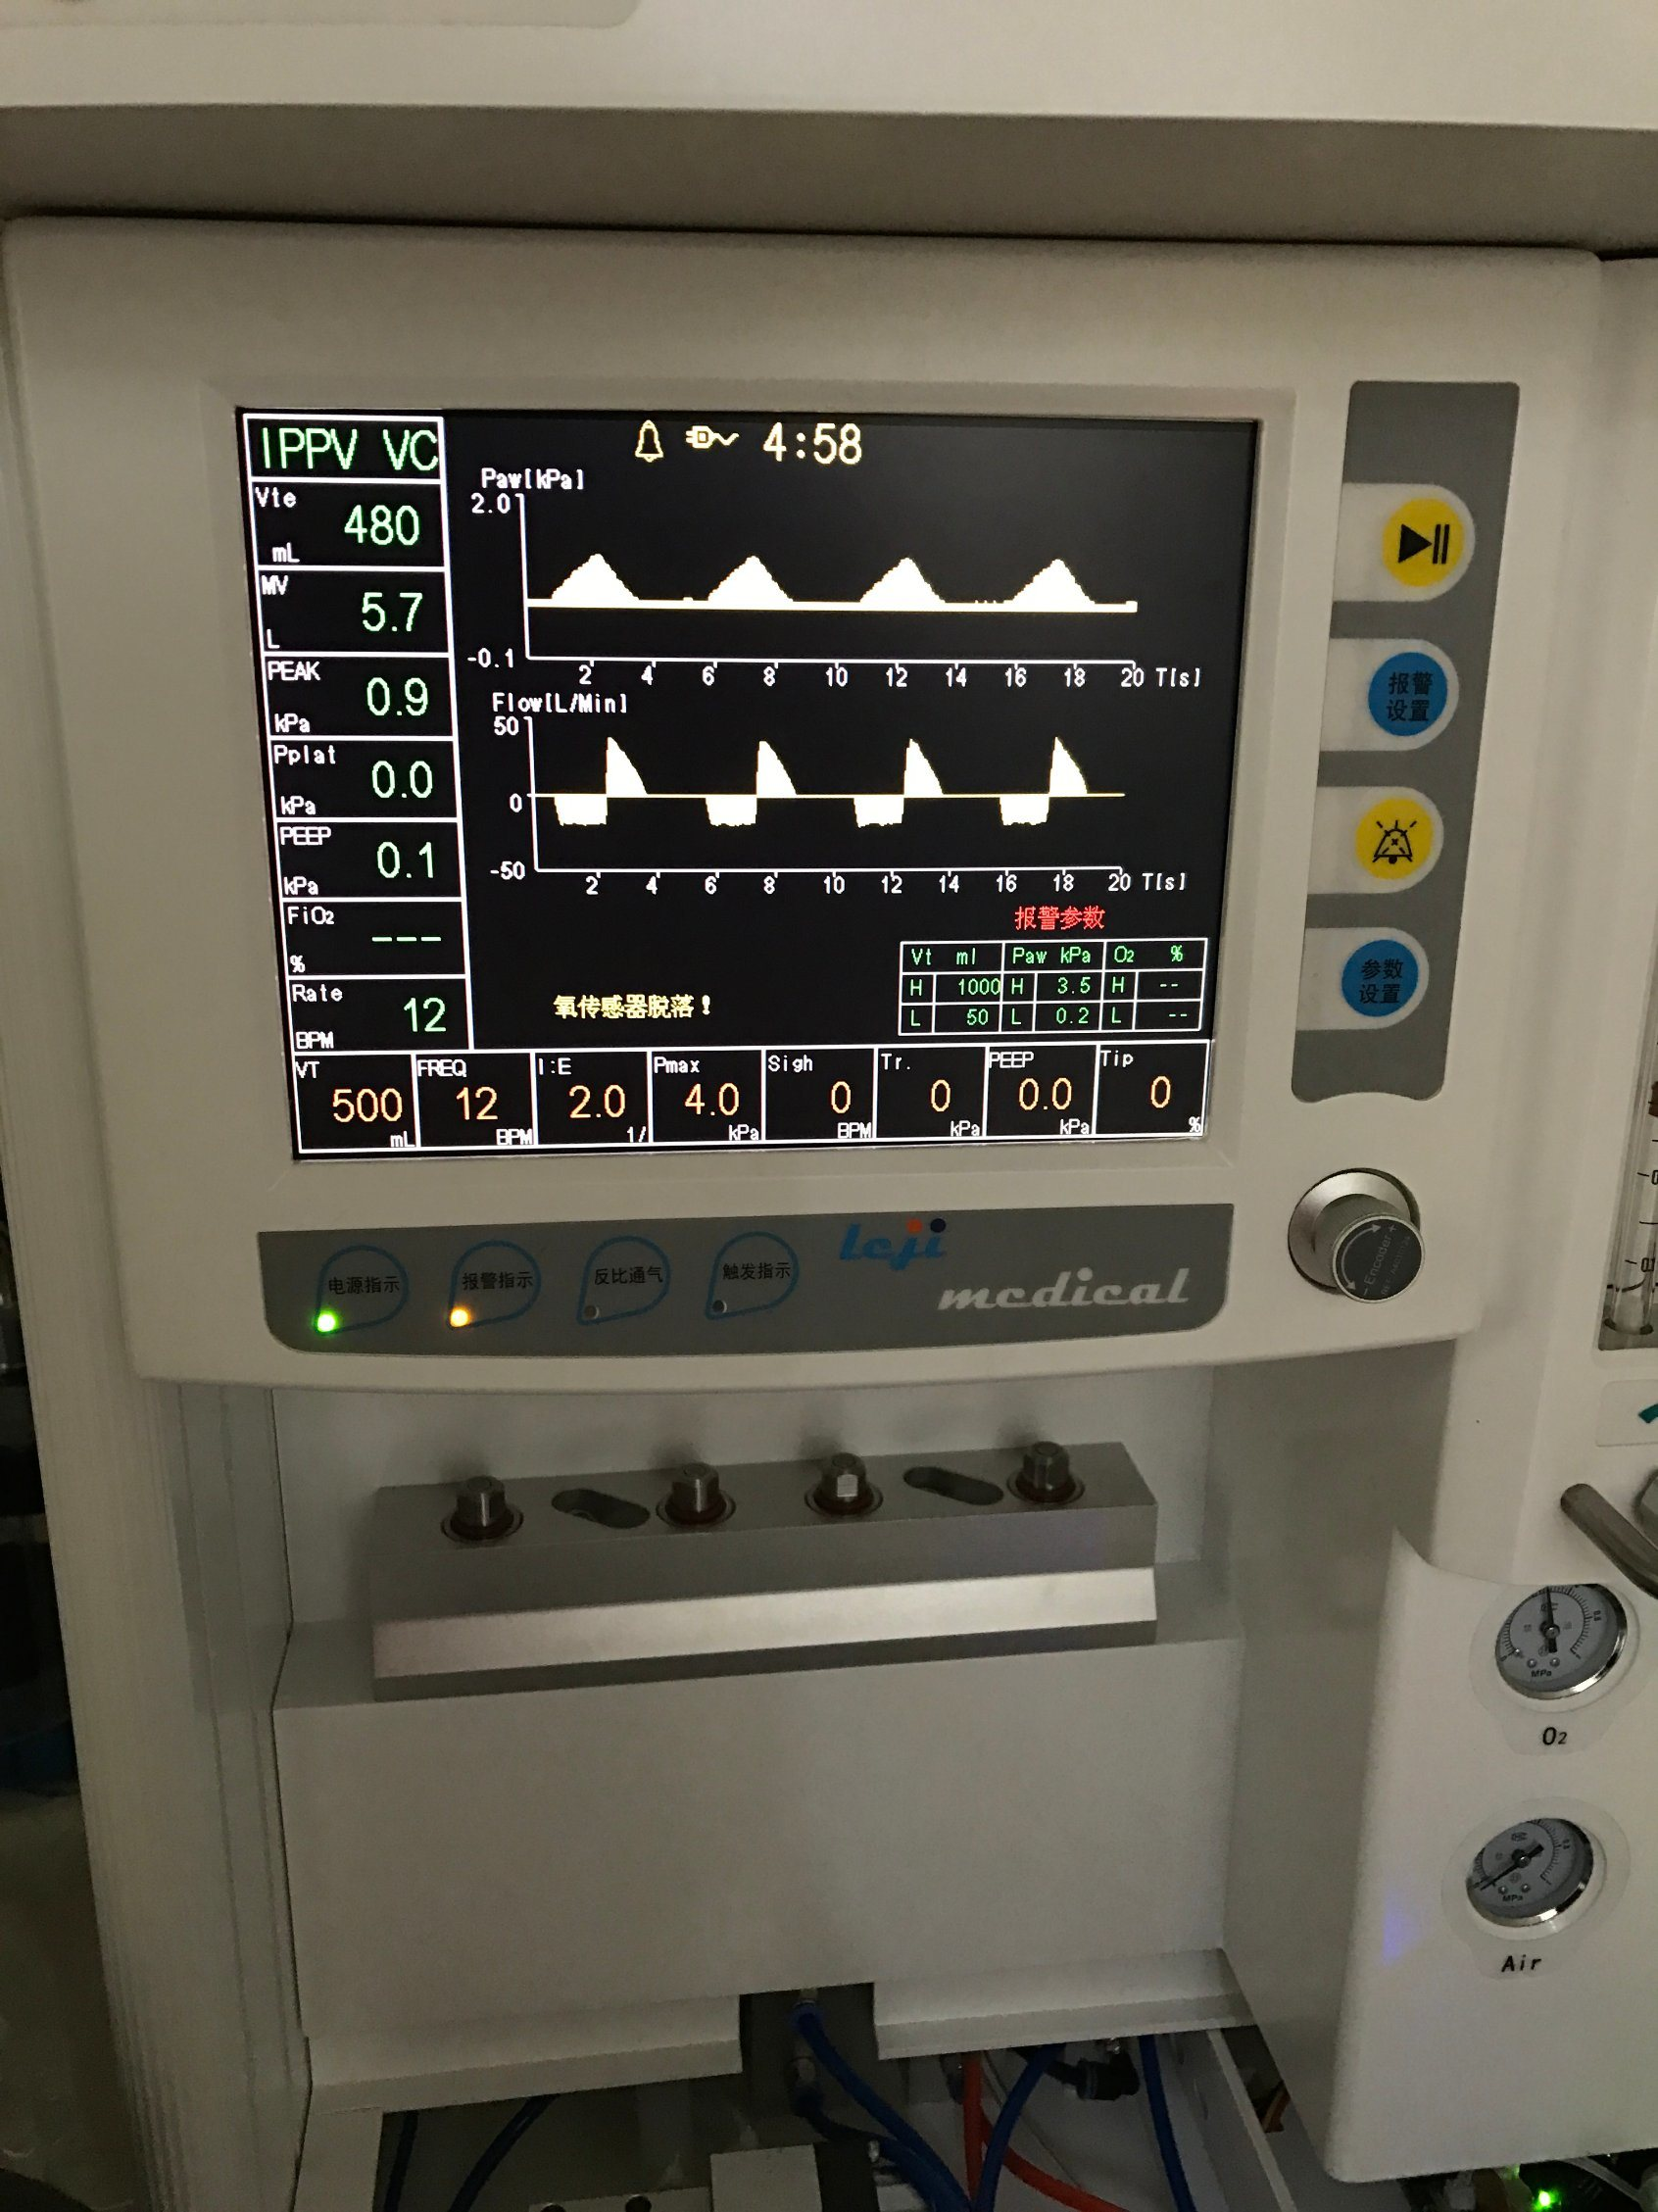 Advanced Medical Anaesthesia Anesthesia Machine Ljm9800 with Ce Certificate